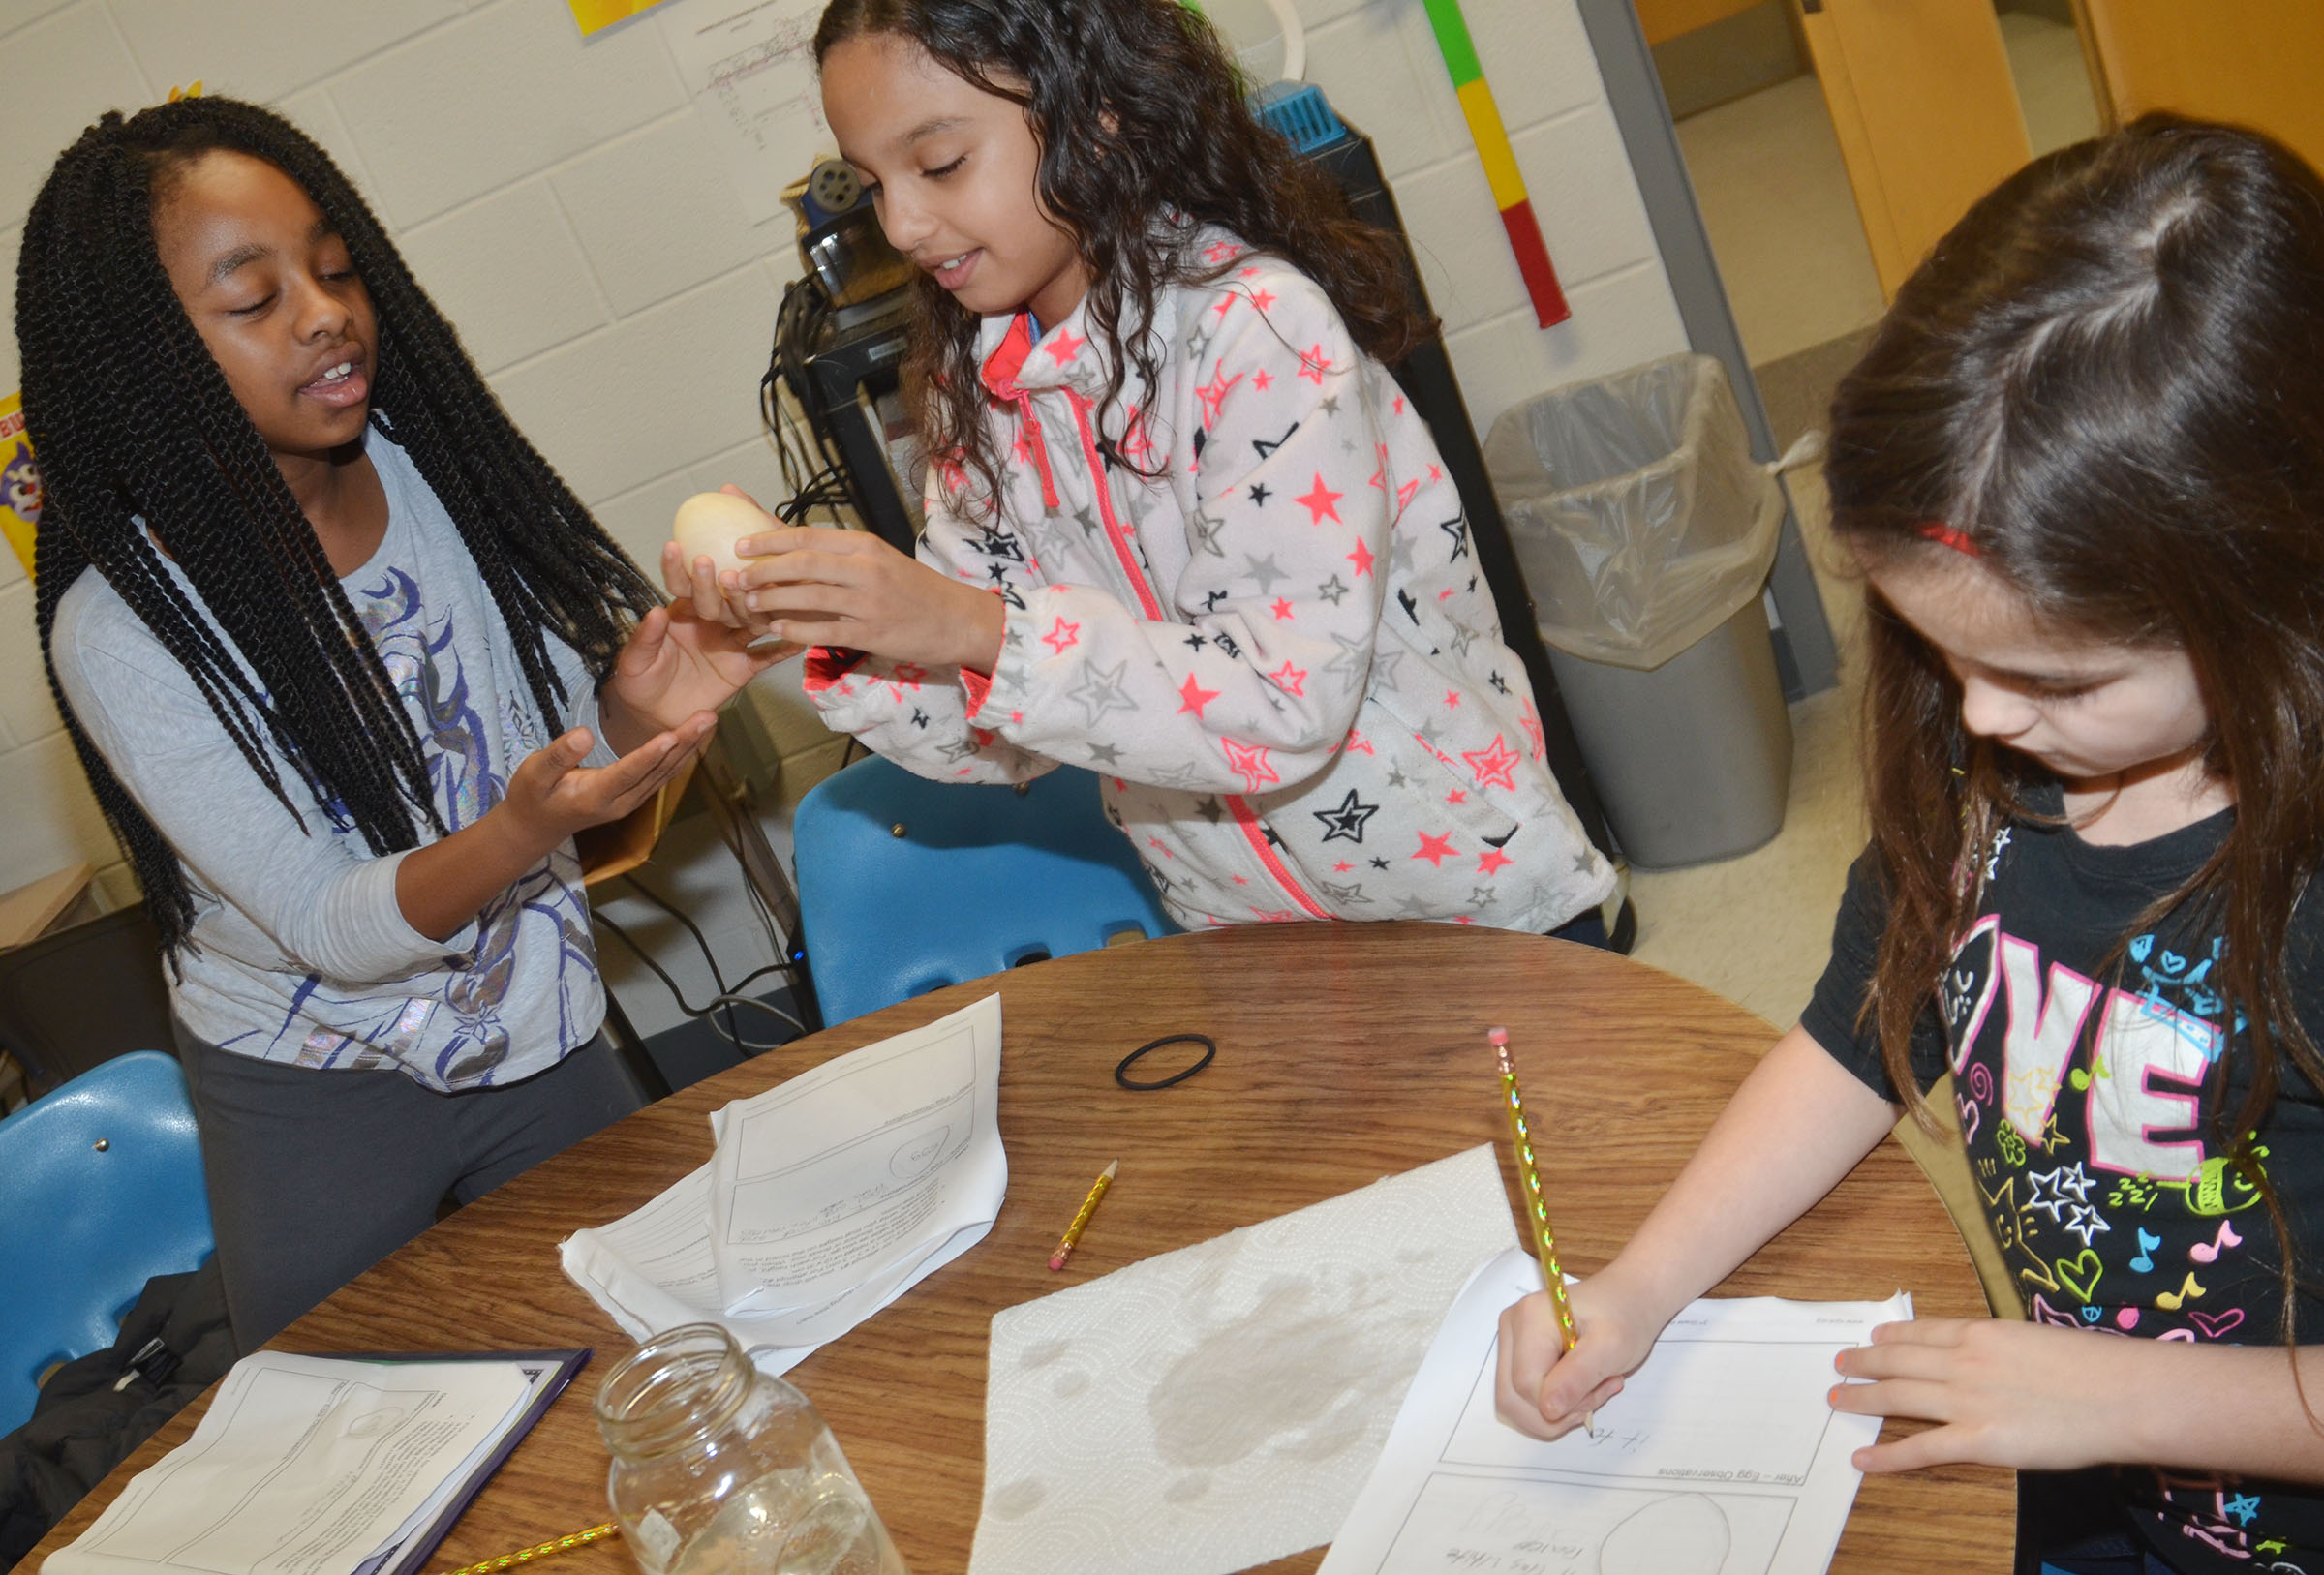 CES third-graders Tiffani Gaddie, at left, and Alyssa Knezevic, center, feel their egg after it has been soaking in vinegar for three days as Alexis Wolford, at right, records their observations.